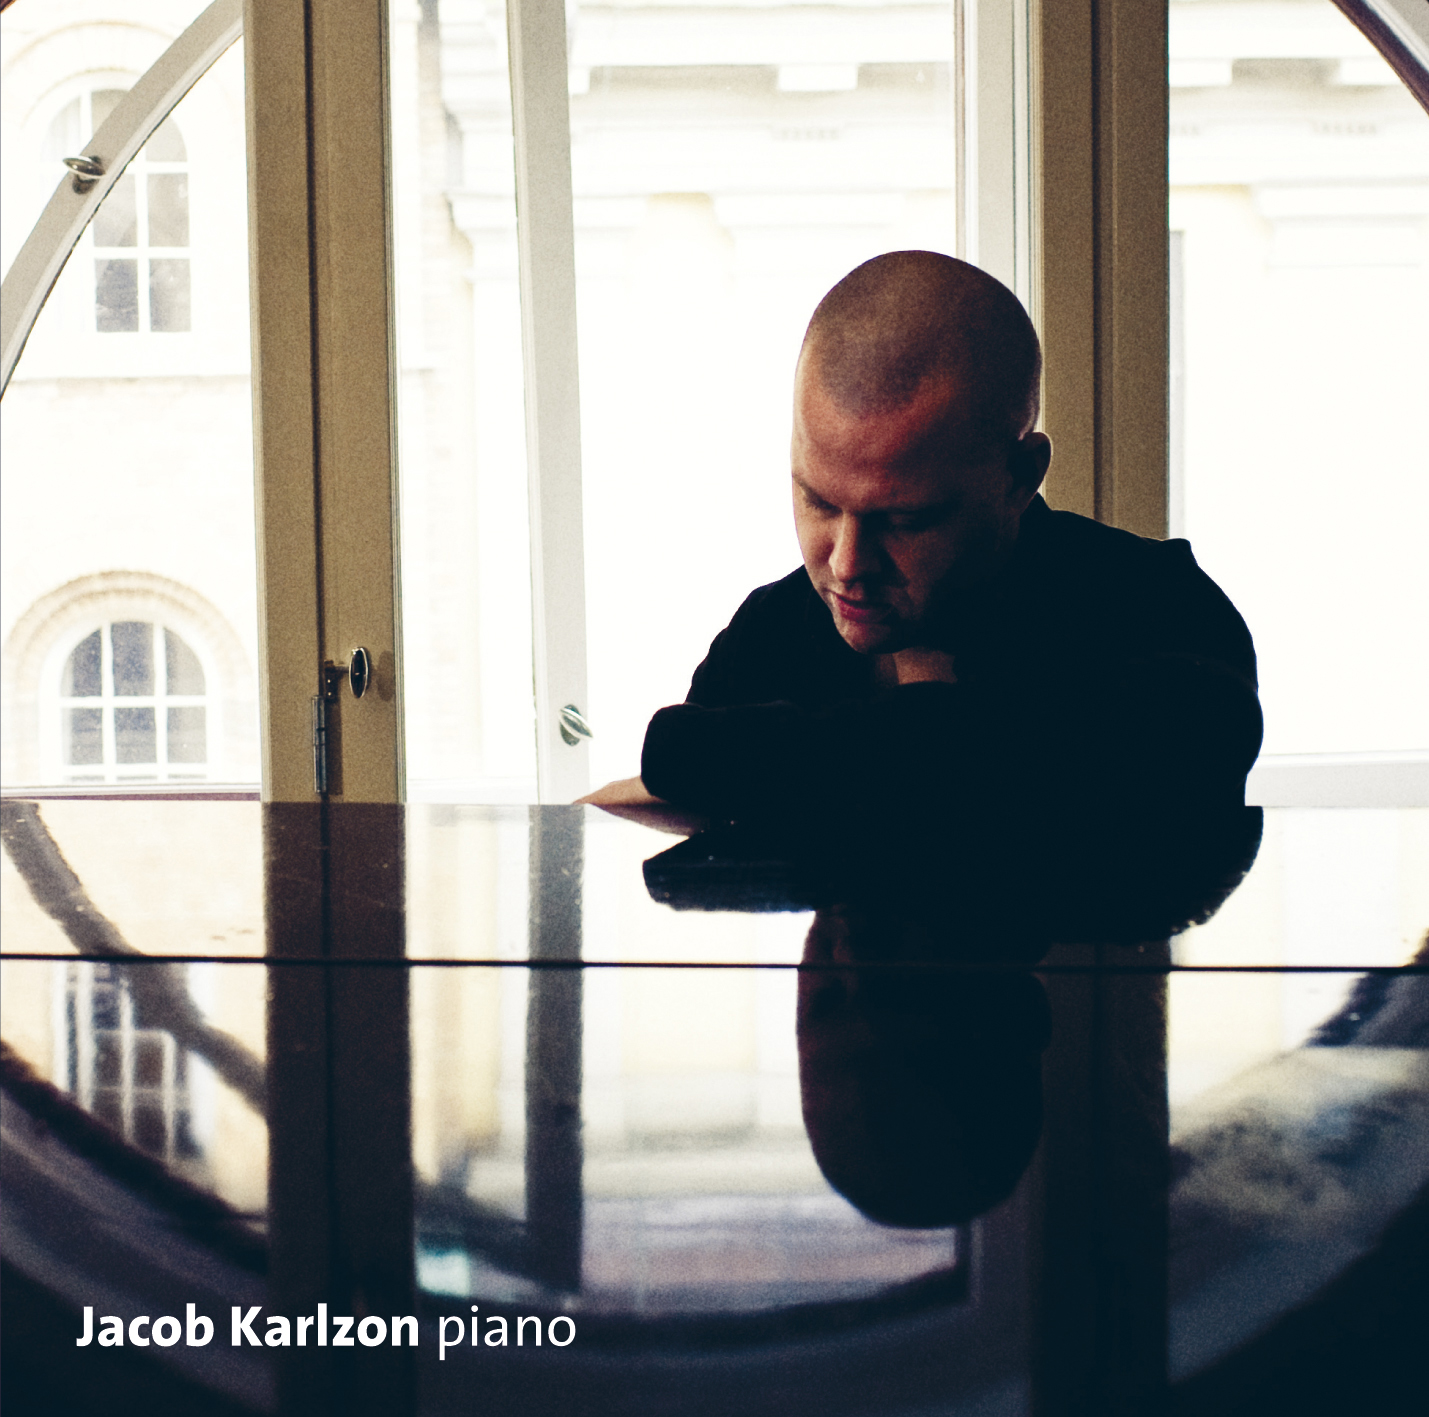 Jacob Karlzon: Improvisational three